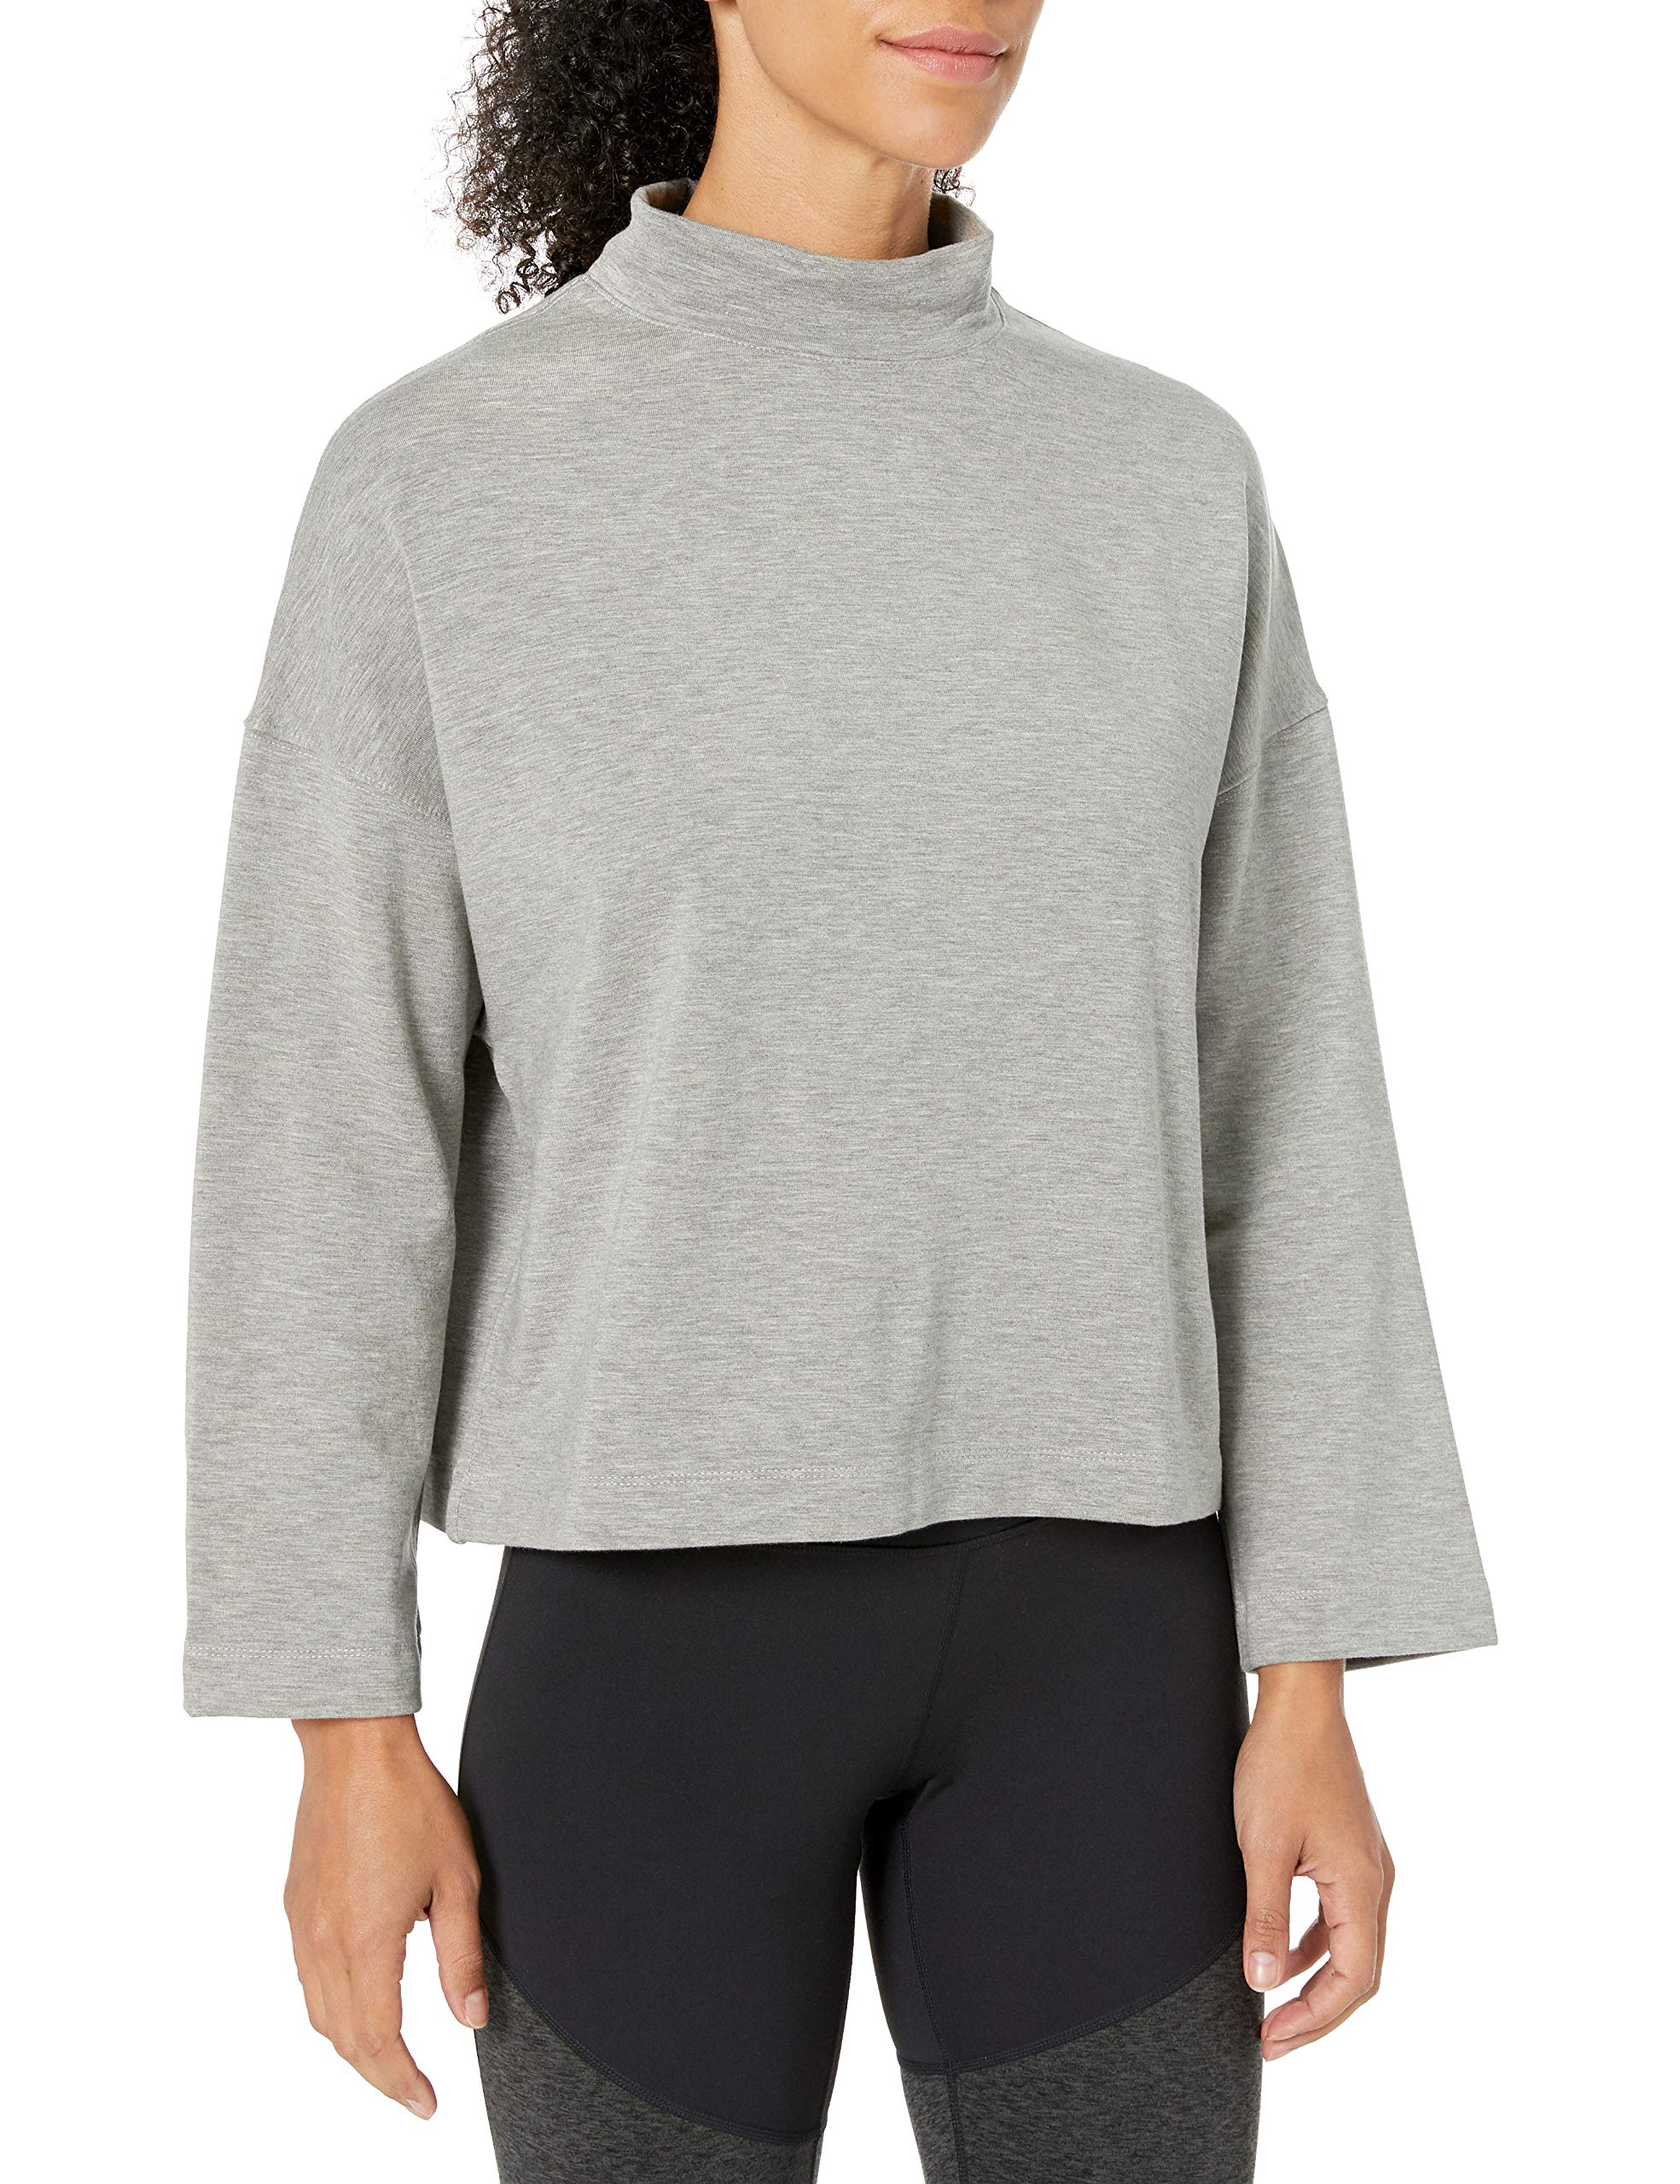 Amazon Brand - Core 10 Women's (XS-3X) Cloud Soft Yoga Fleece Mock Dolman Sweatshirt